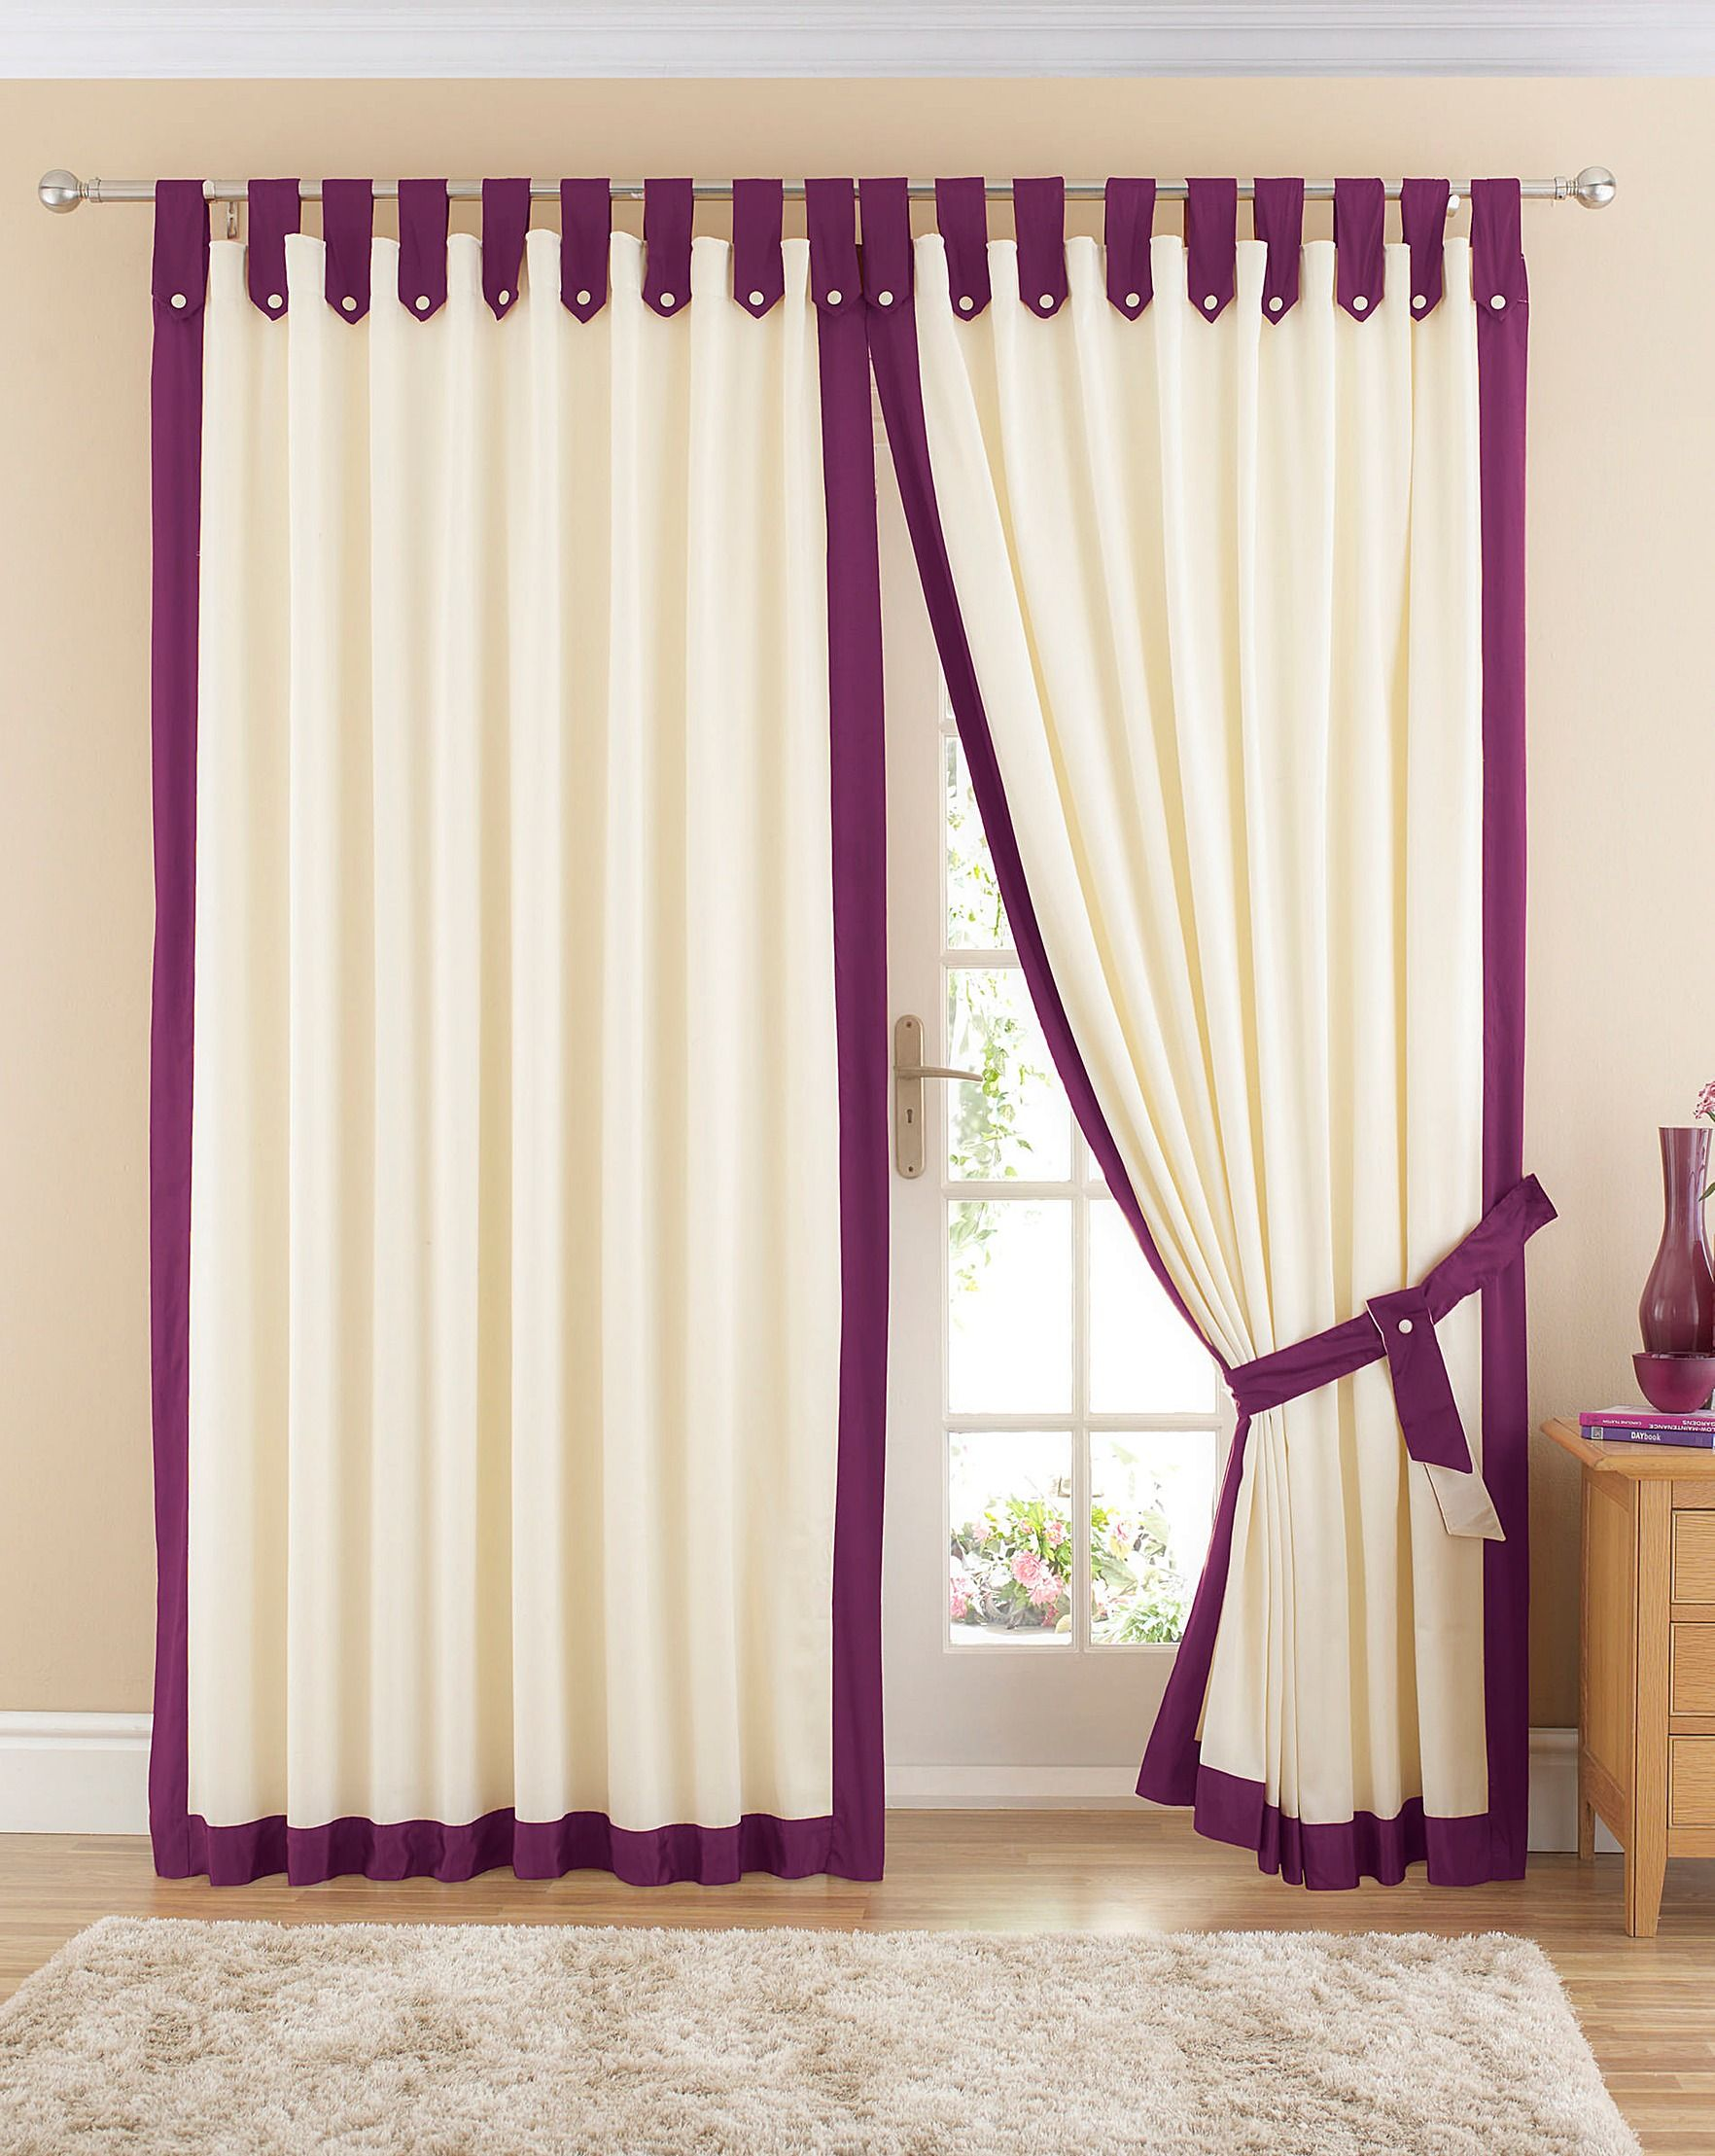 How to make tab top curtains - Room Design Curtain Blinds With Elegant Curtains And Cotton Tab Top Curtains Natural Also Black